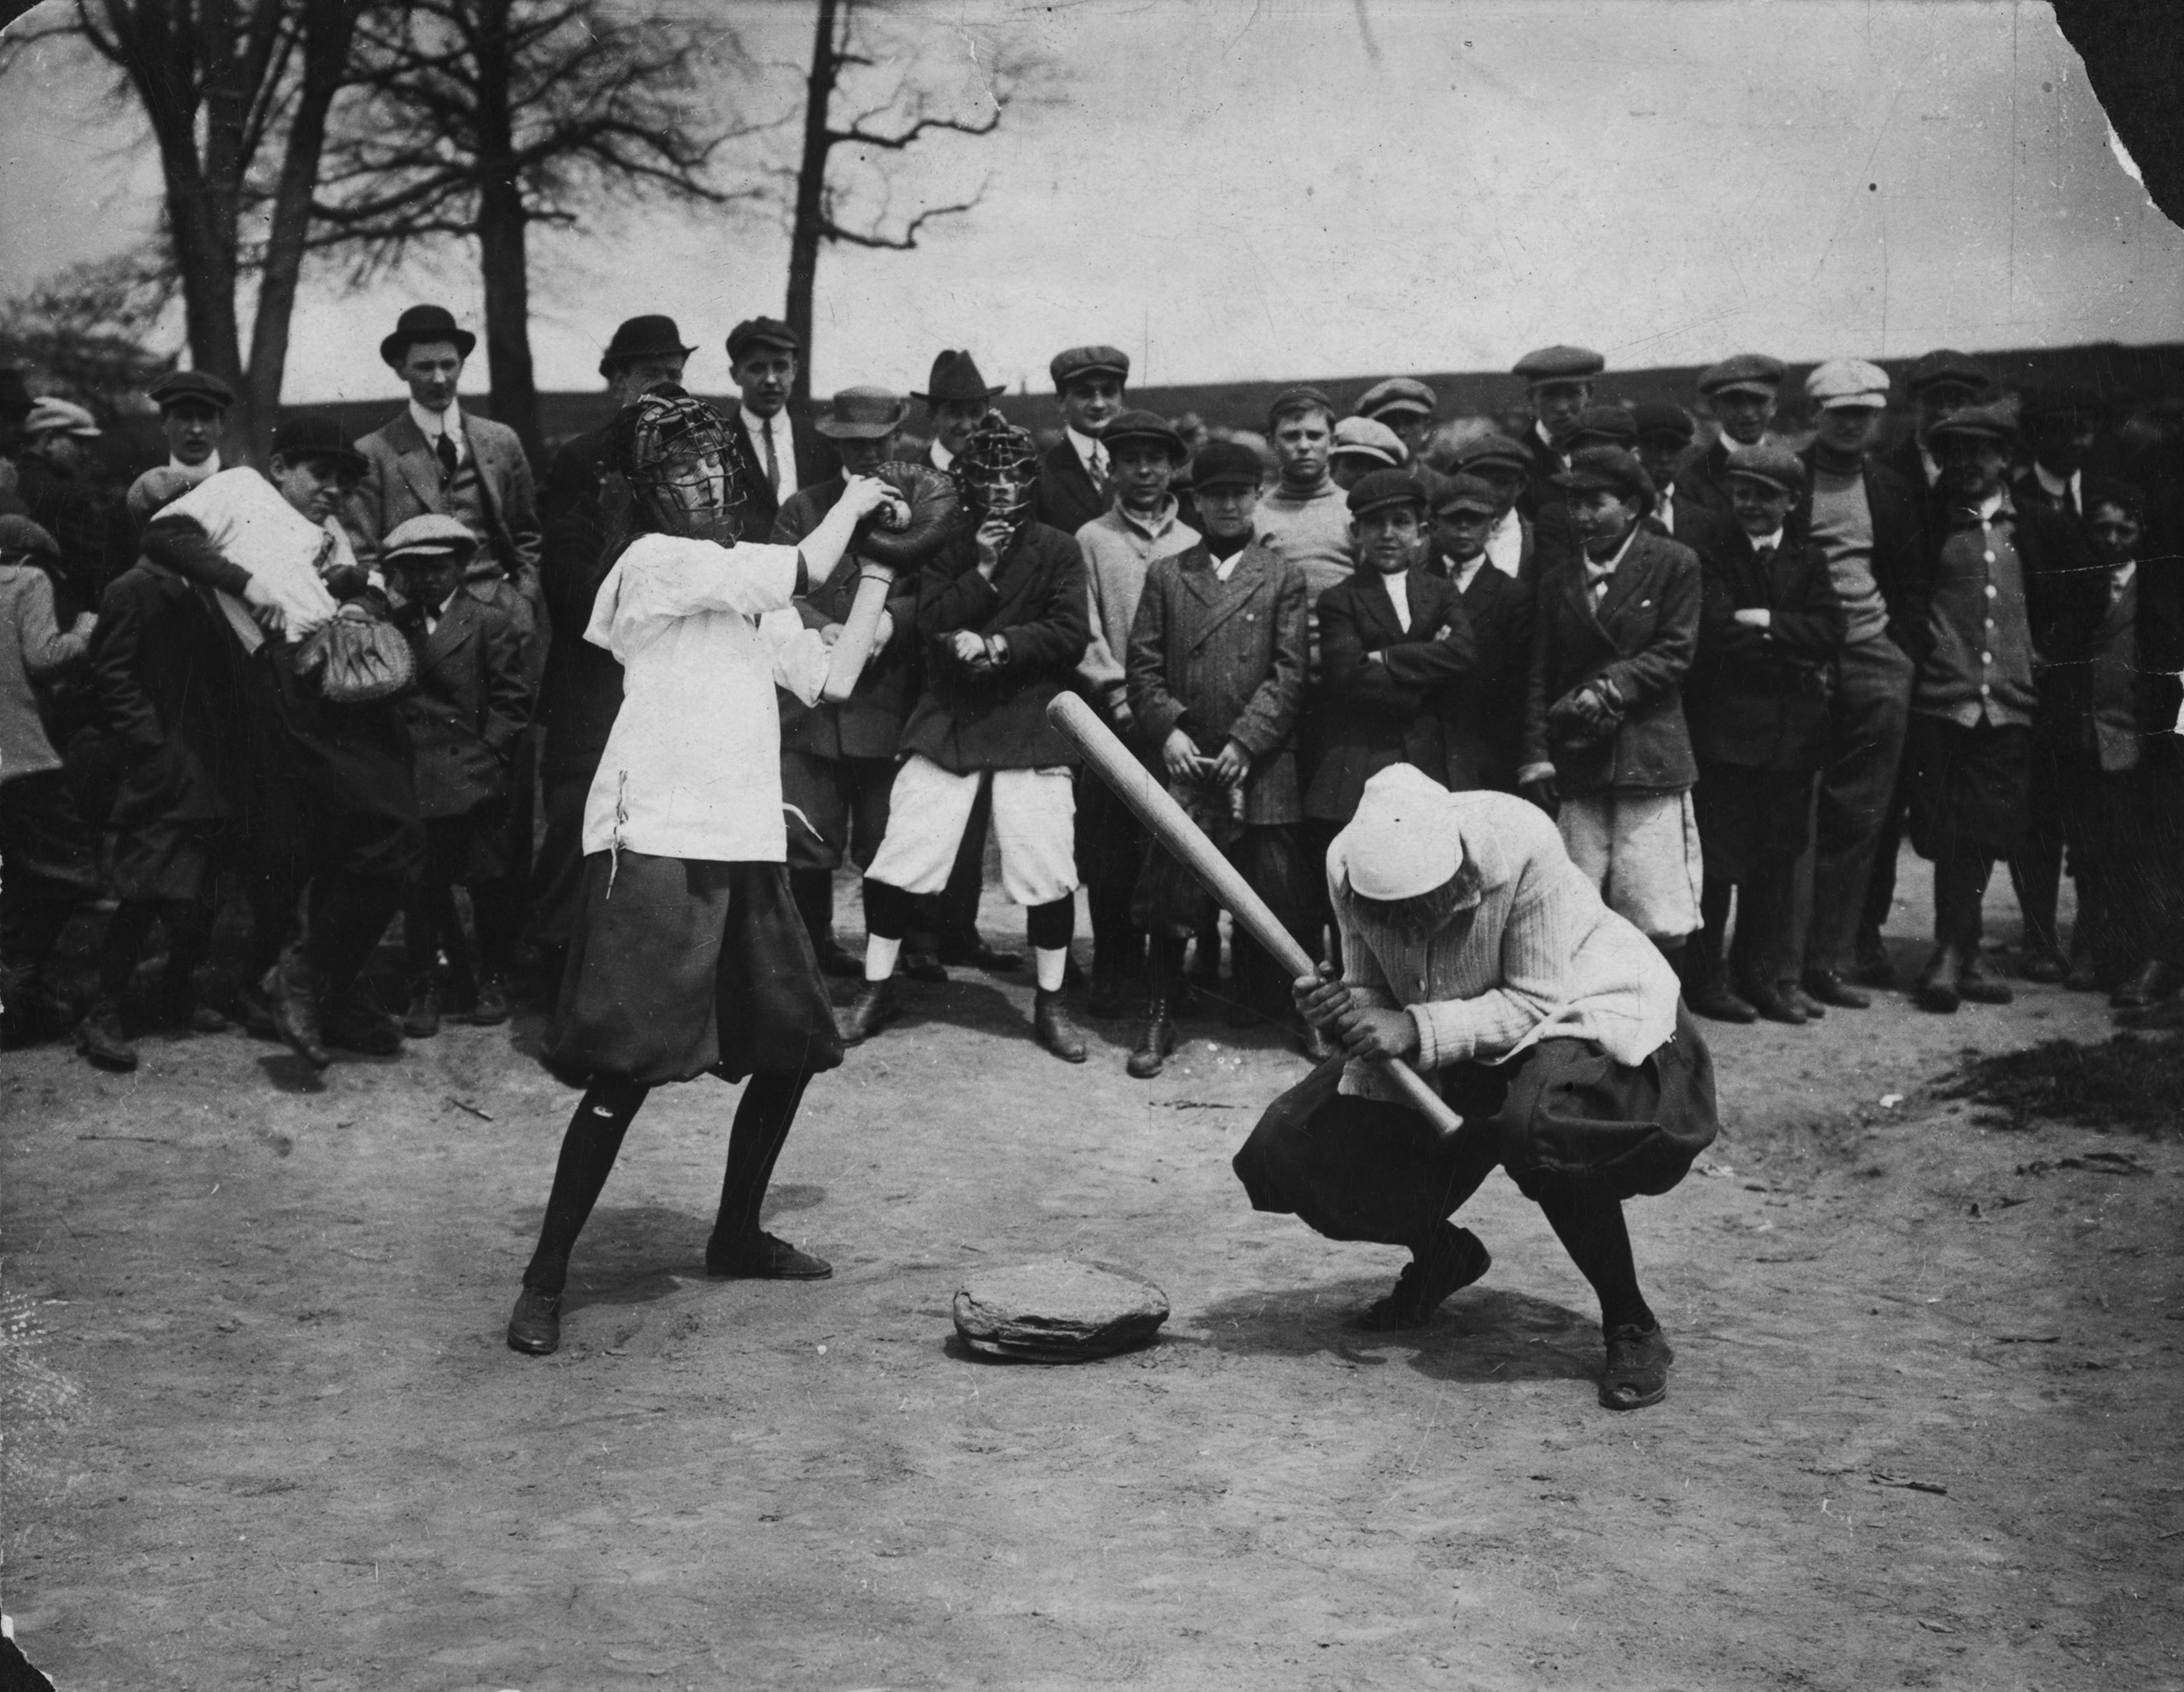 New York female  Giants  - Miss McCullum catcher and Miss Ryan at bat. Circa 1913.